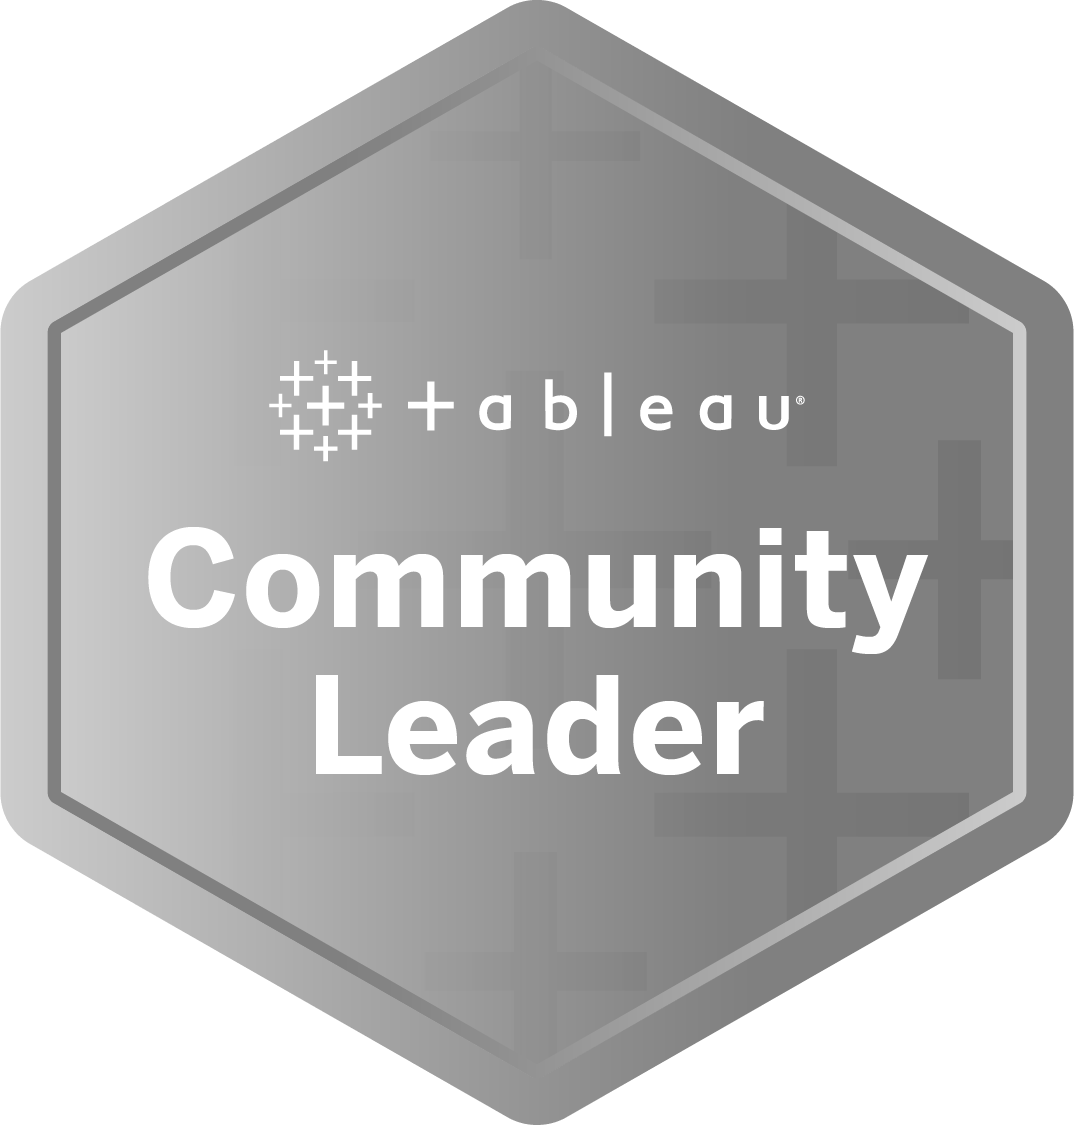 Community Leader badge